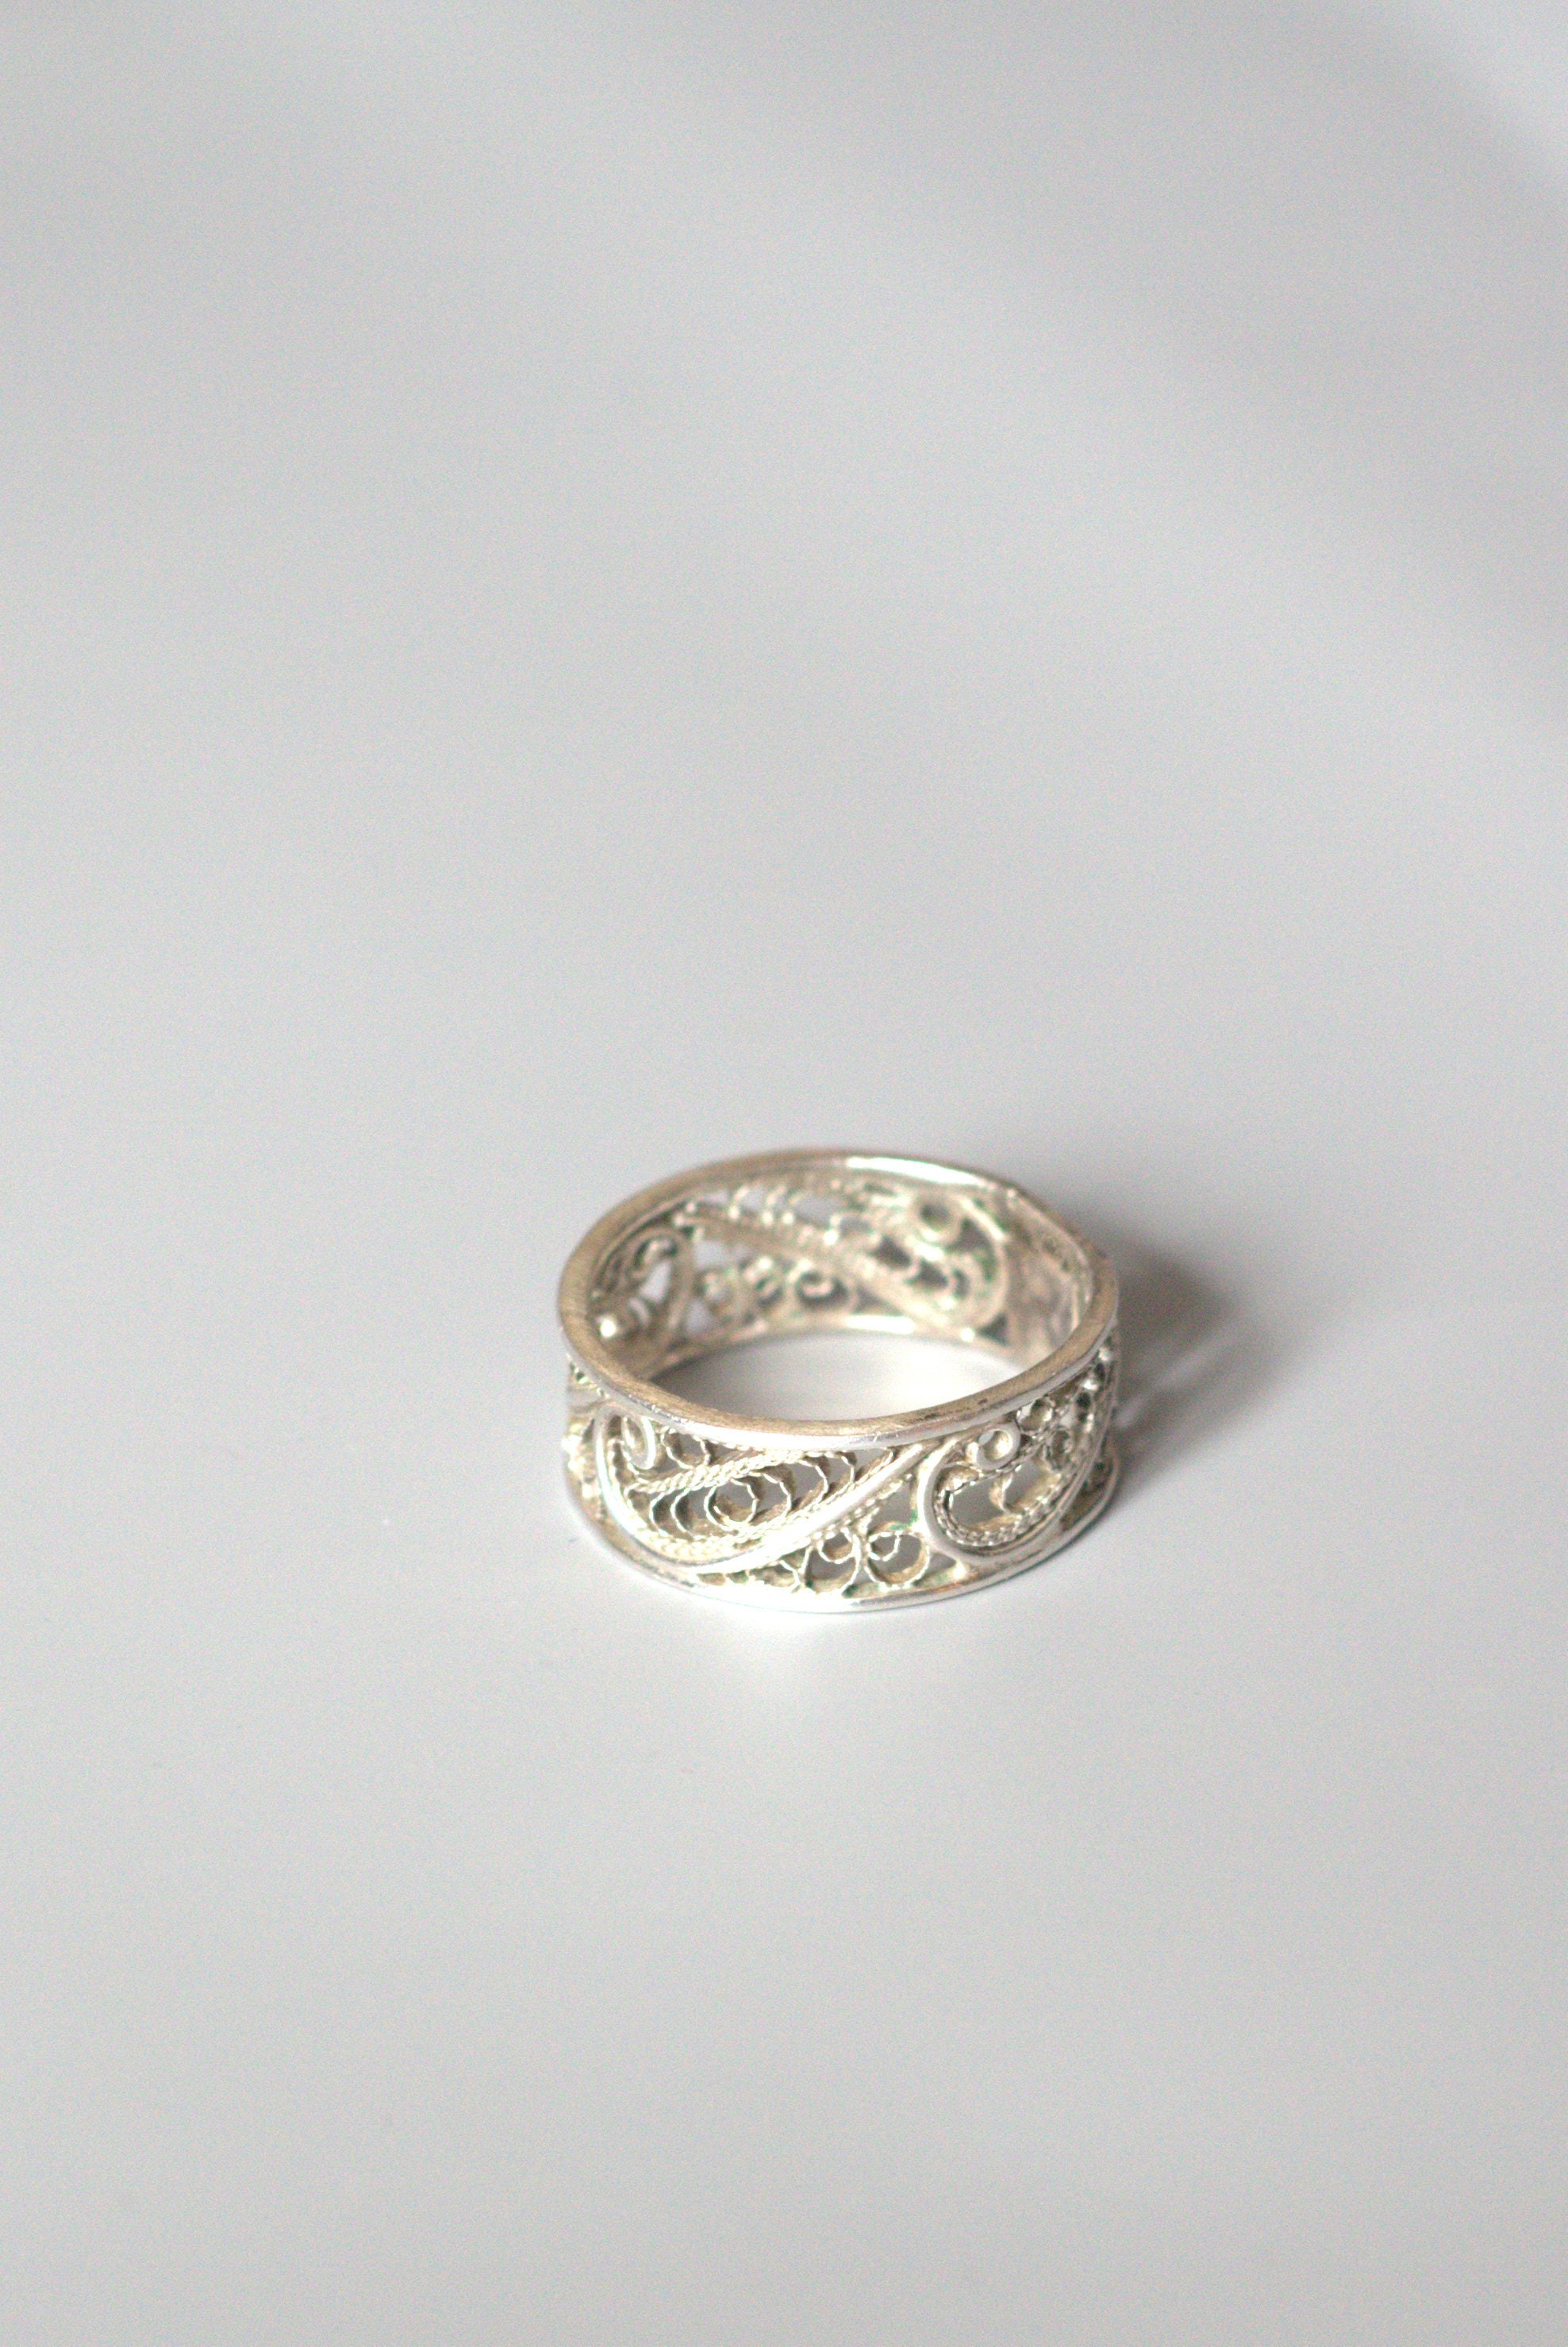 products garden sterling filigree open swirl womens ring wide silverly silver vine pattern band bands mm